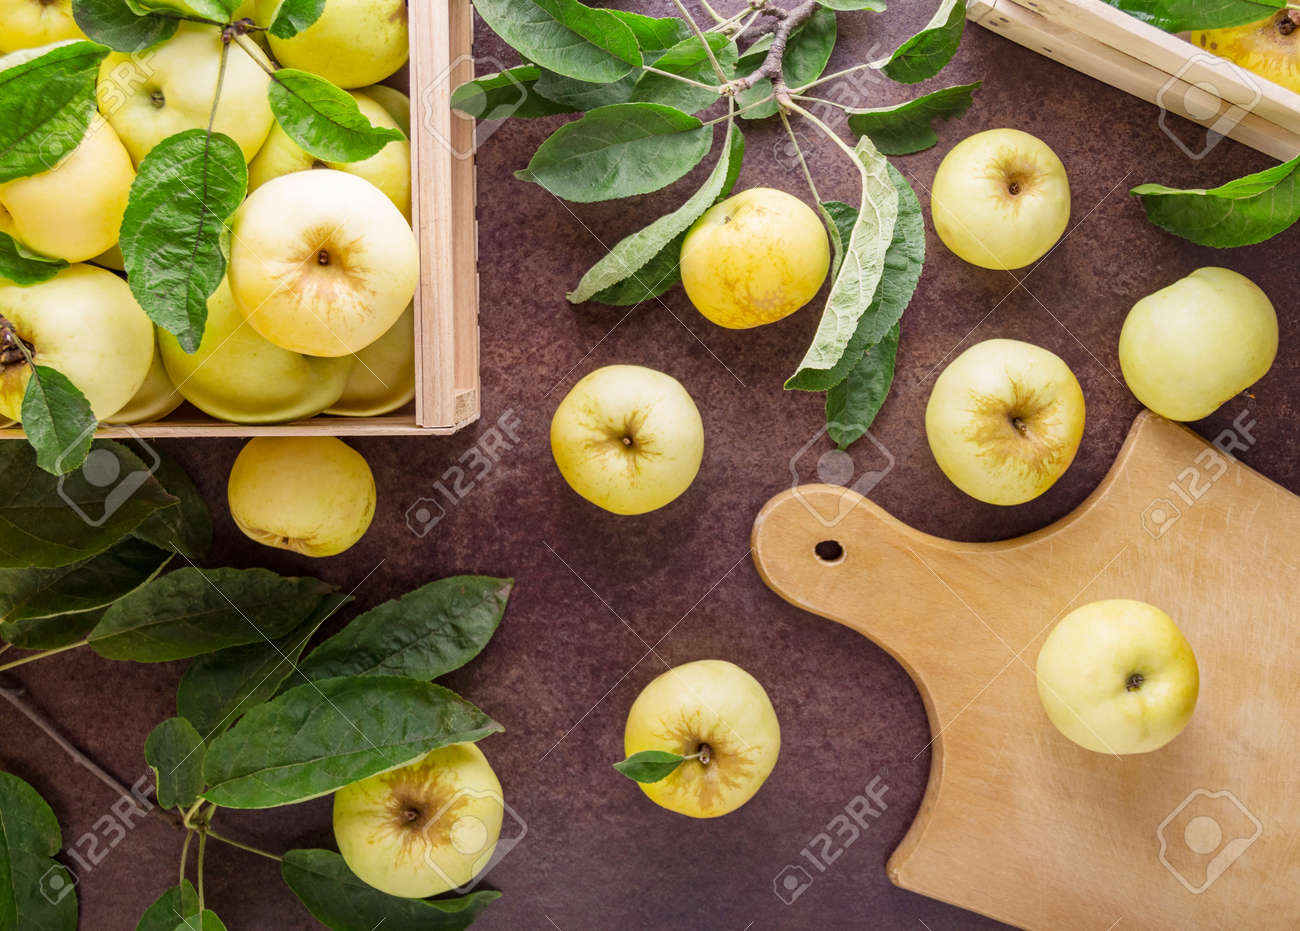 Top view. Fruit harvest. Fresh juicy apples with leaves in a wooden box on a dark background - 167288810